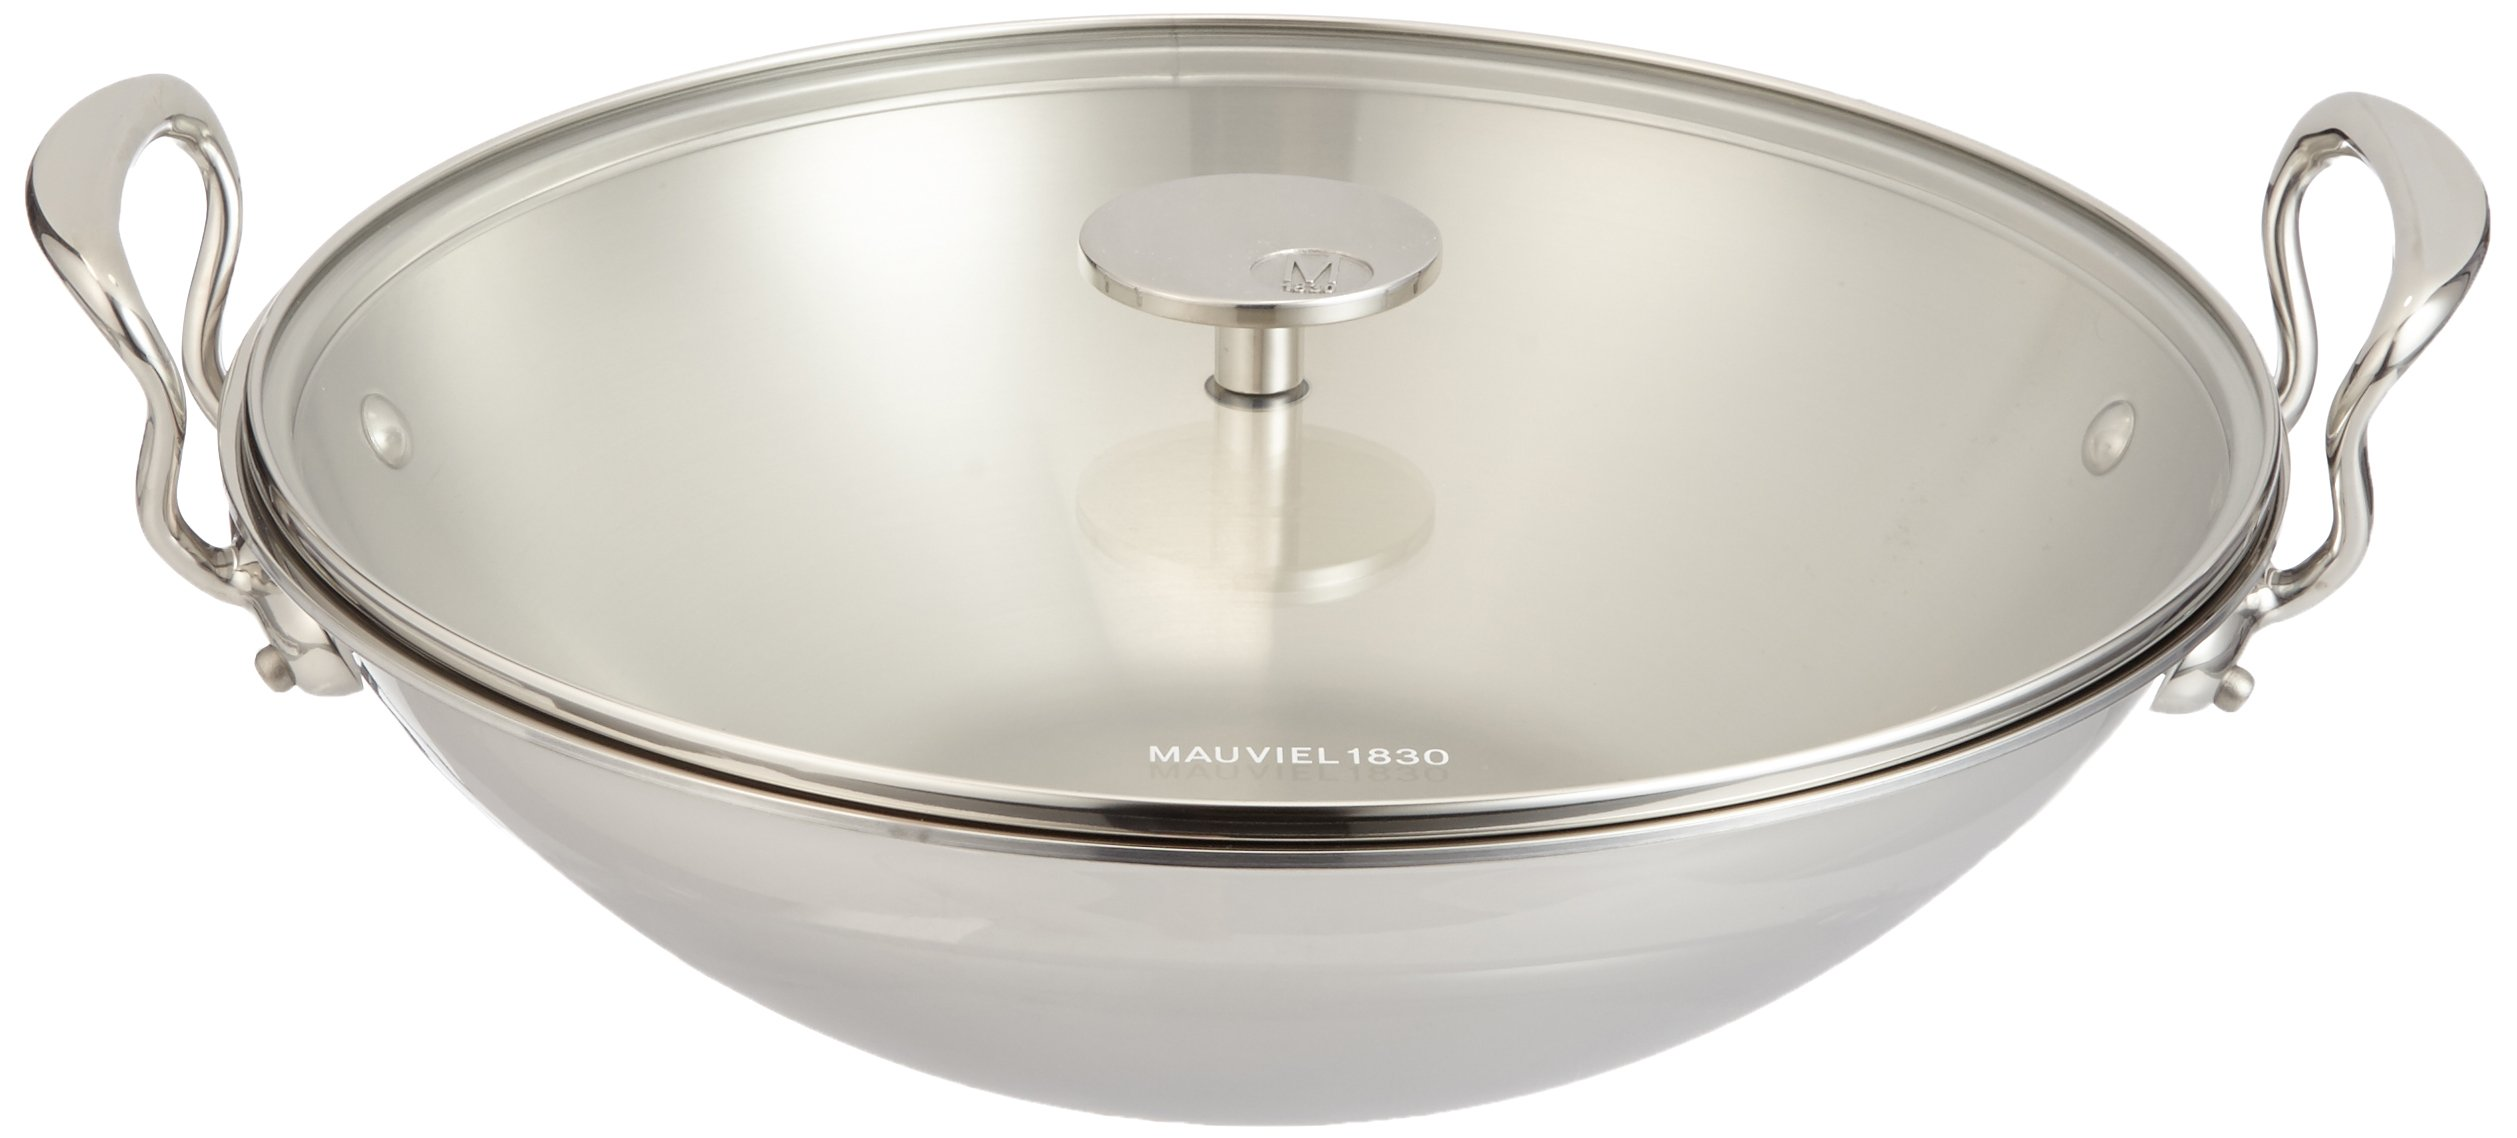 Mauviel Made In France M'Cook 5 Ply Stainless Steel 5225.32 13.25 Inch Wok with Cast Stainless Steel Helper Handle